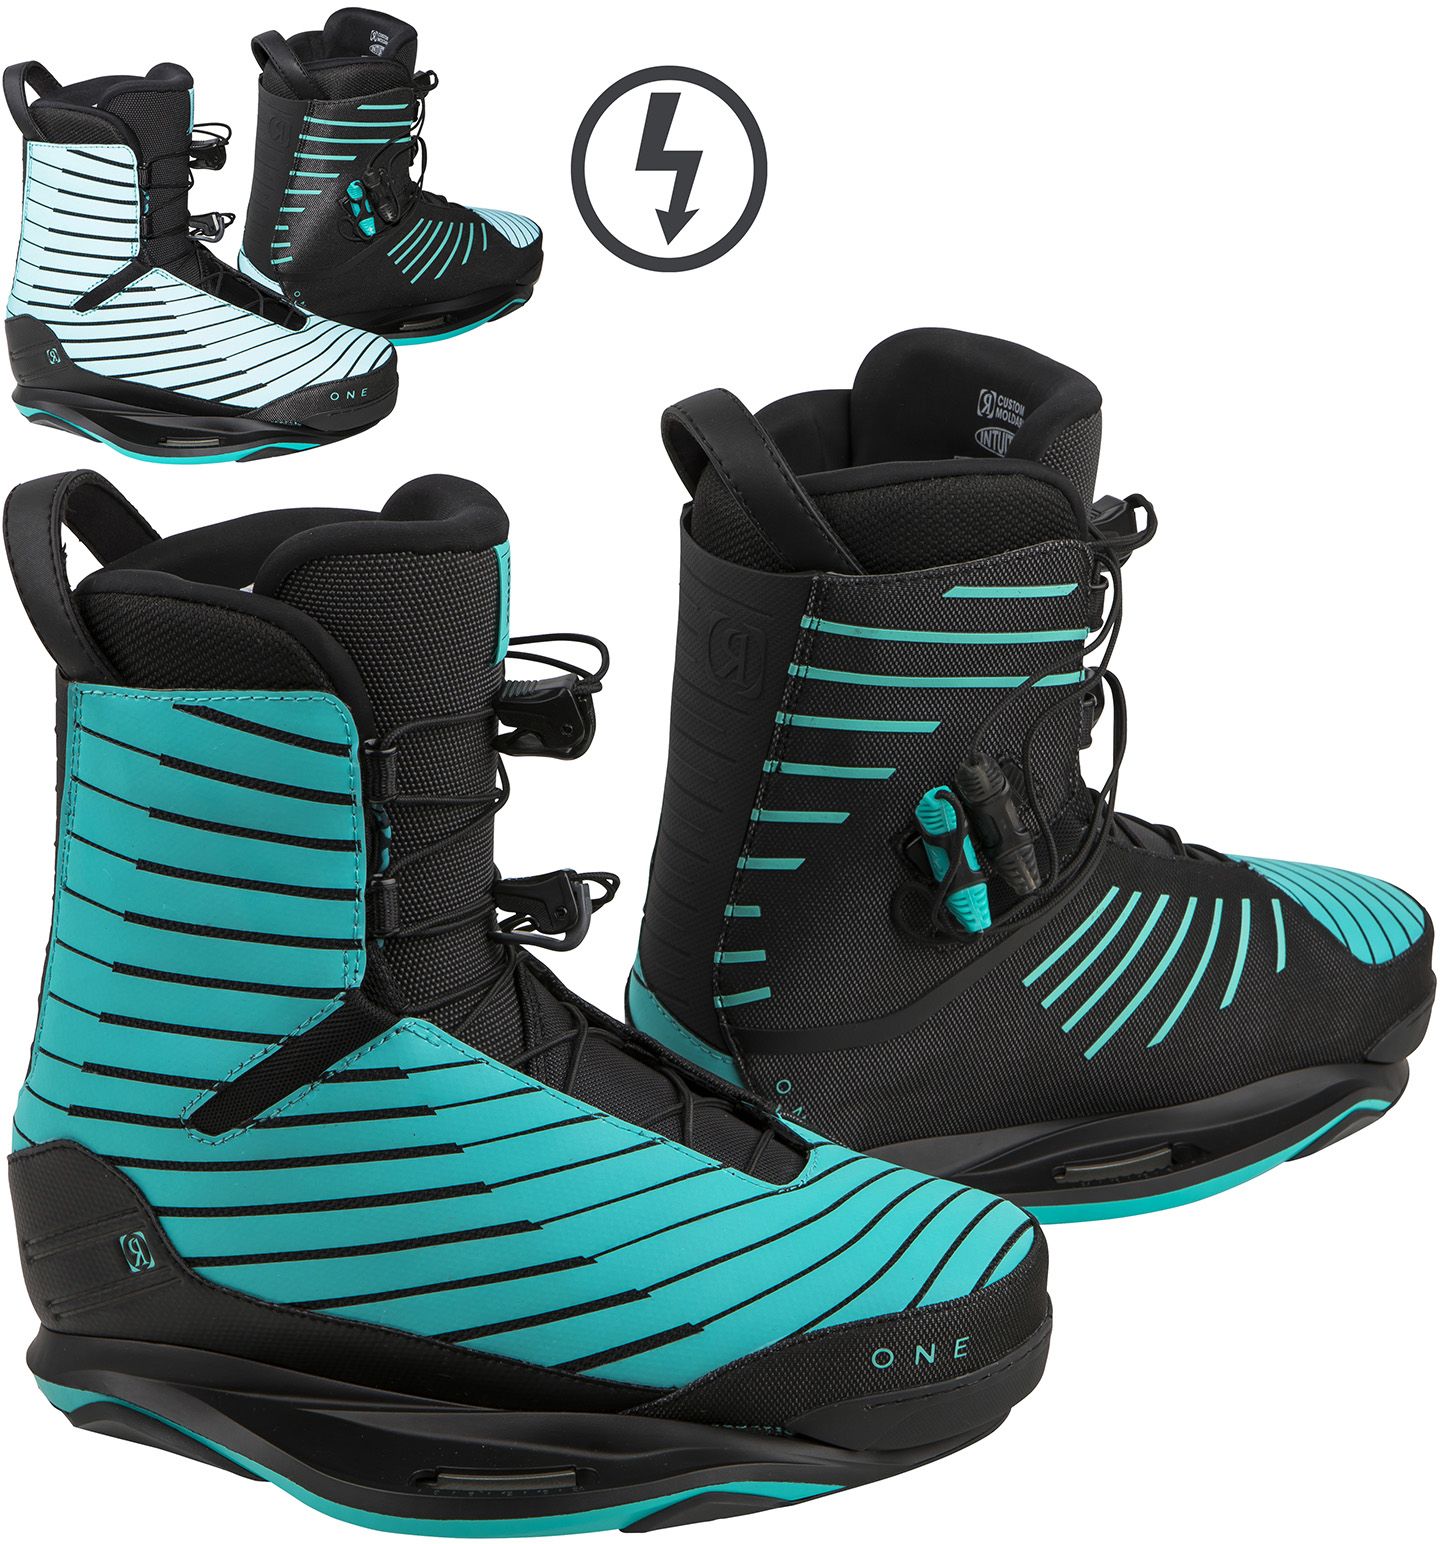 ONE FLASH MINT BOOT RONIX 2018